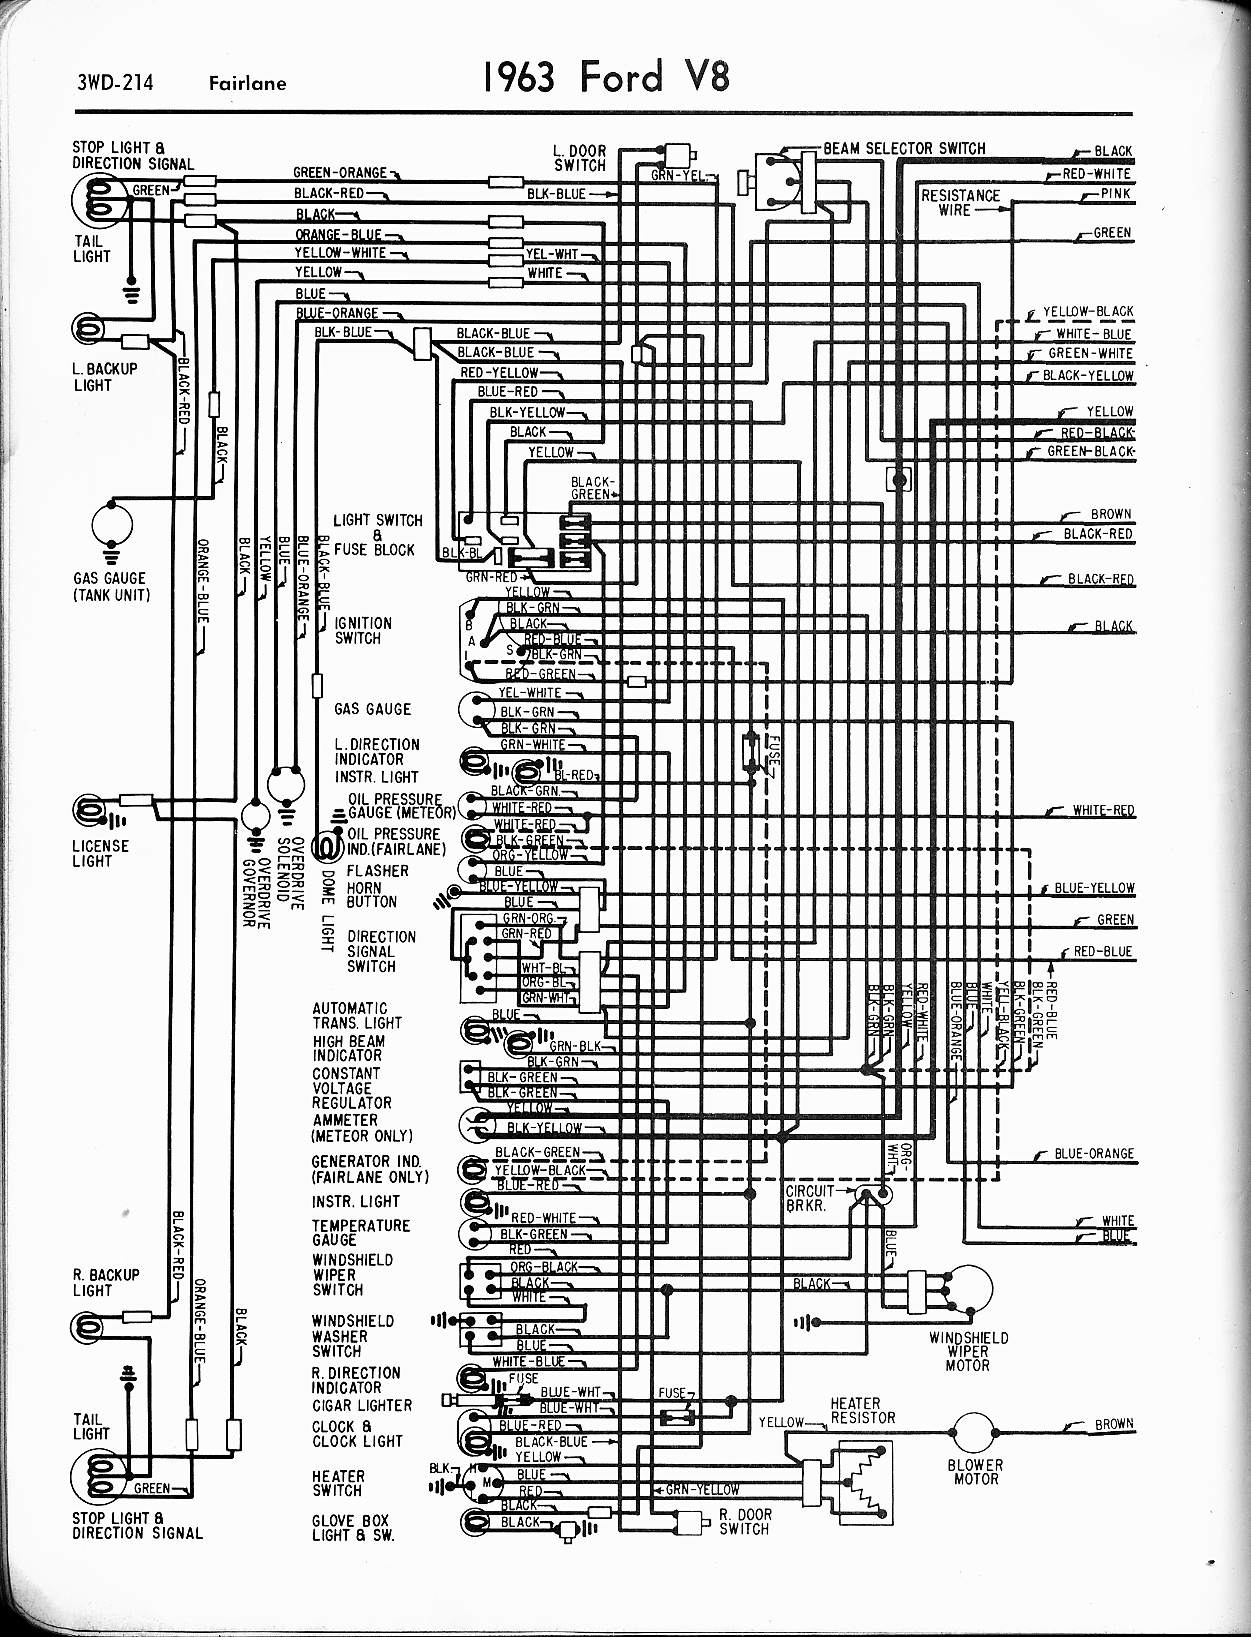 1963 ford f100 wiring diagram toyota echo radio 57 65 diagrams v8 fairlane left